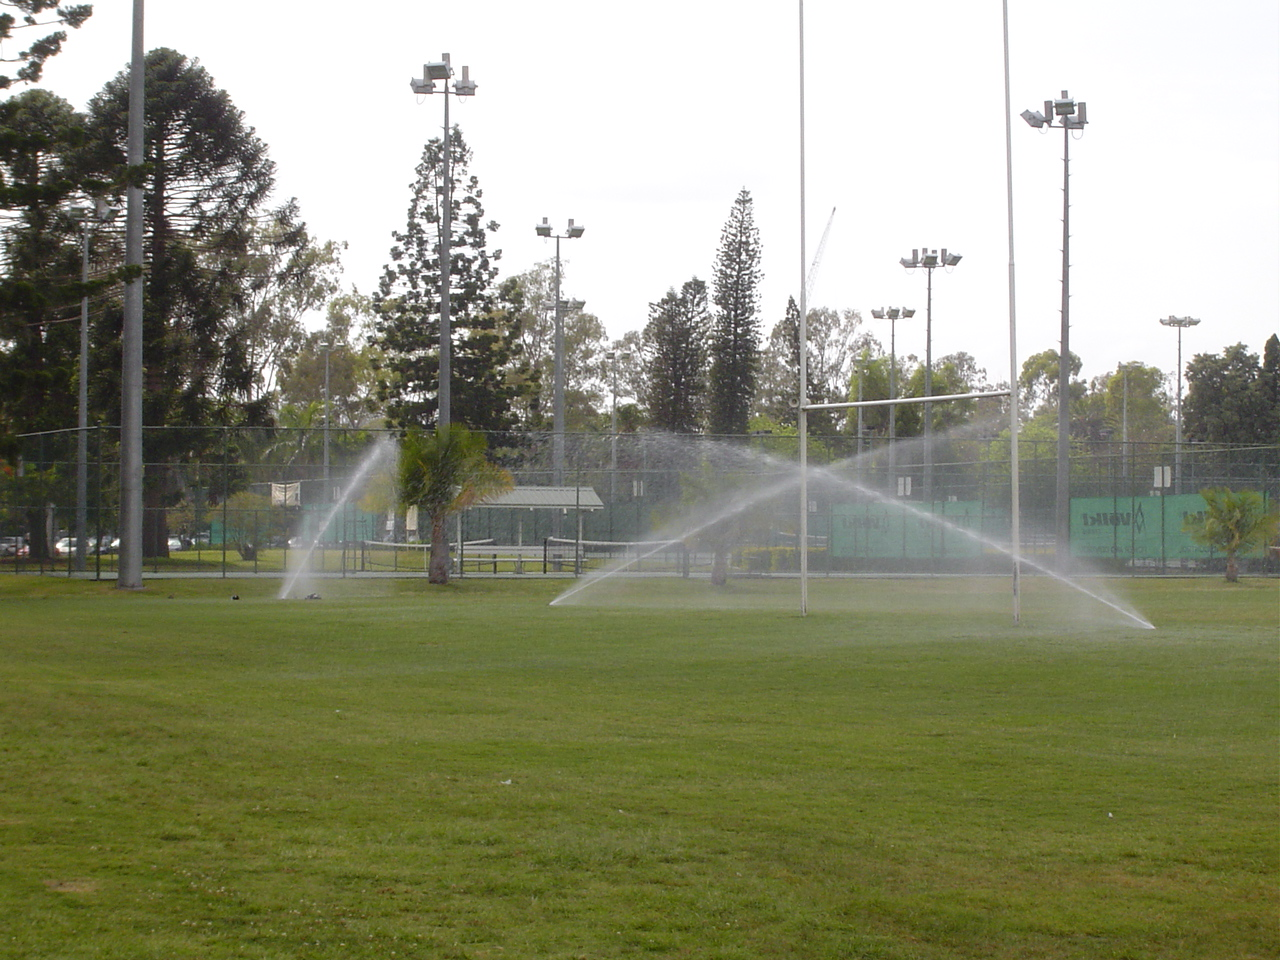 Irrigation at the UQ Oval